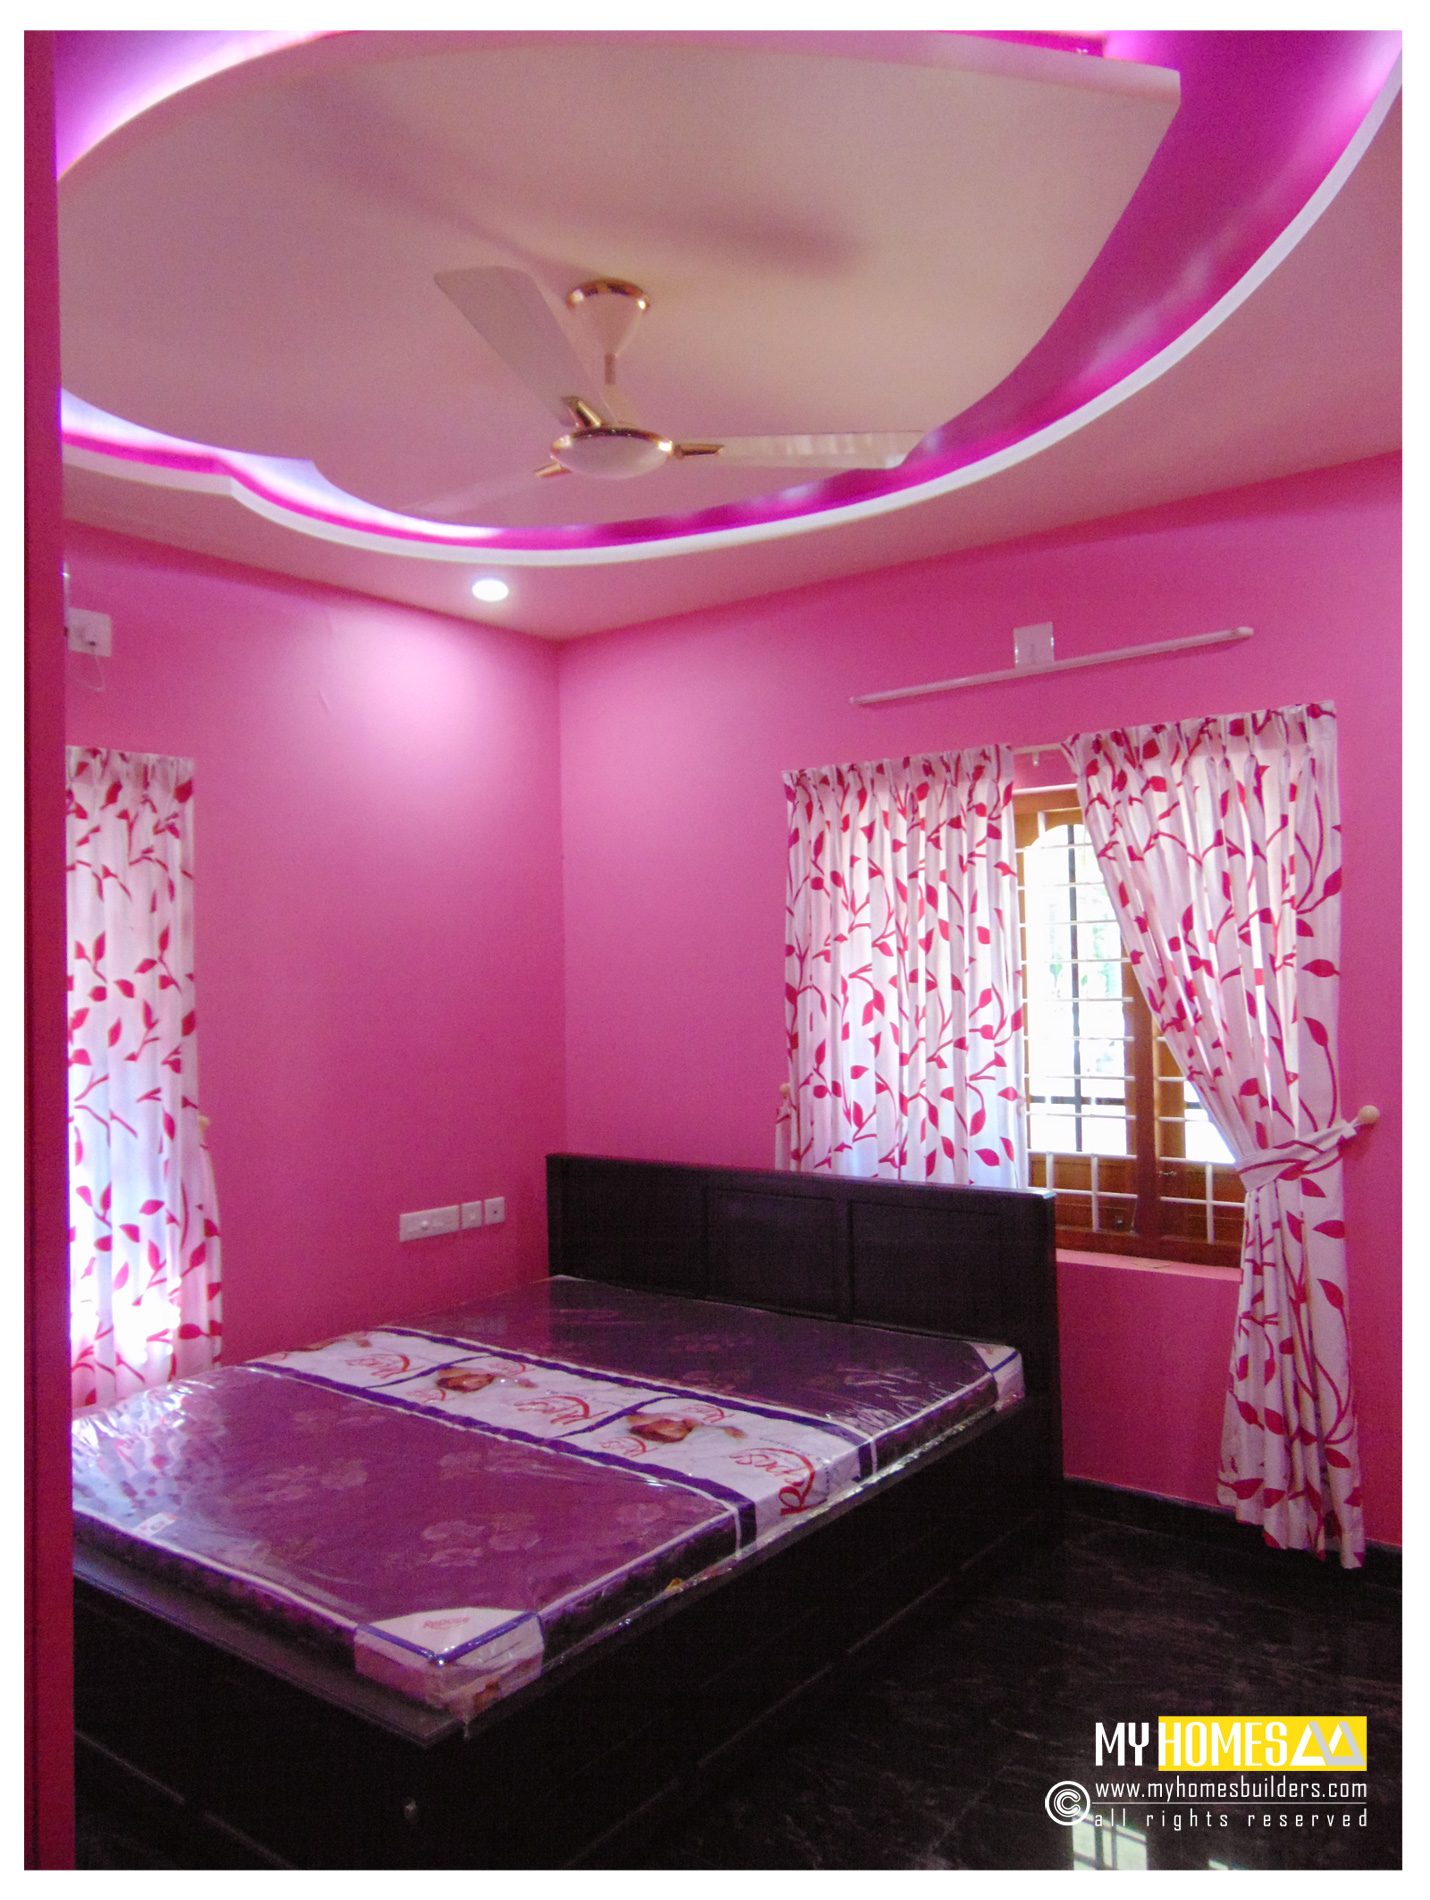 Simple style kerala bedroom designs ideas for home interior for Latest model bed design